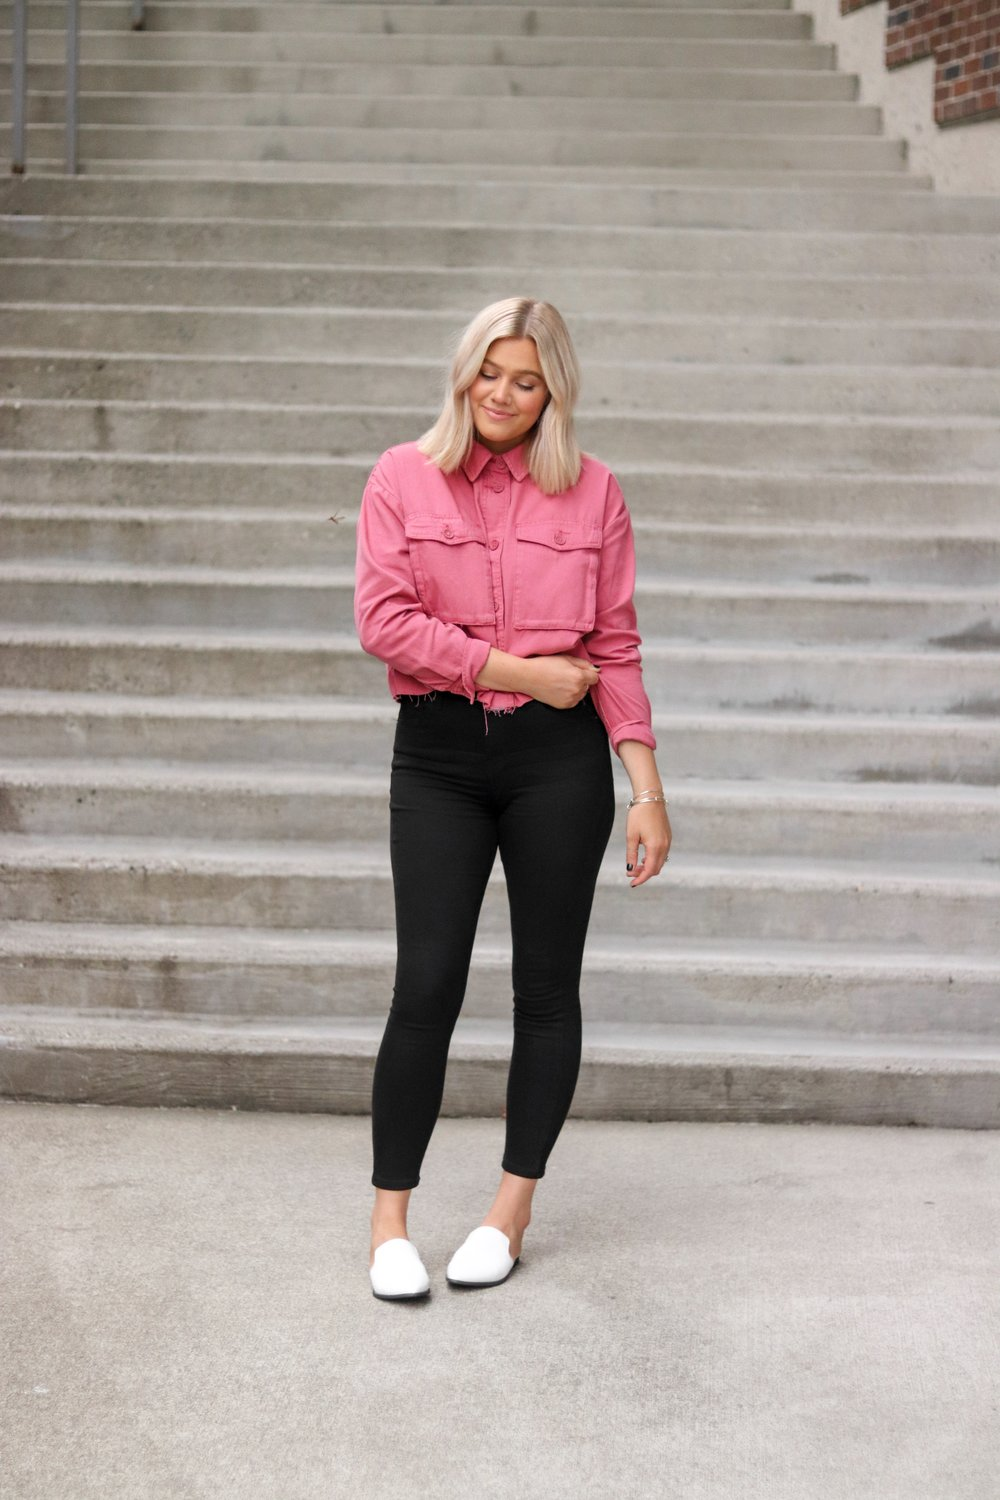 Casual Cool Under $75 With Nordstrom - Bre Sheppard 4.JPG